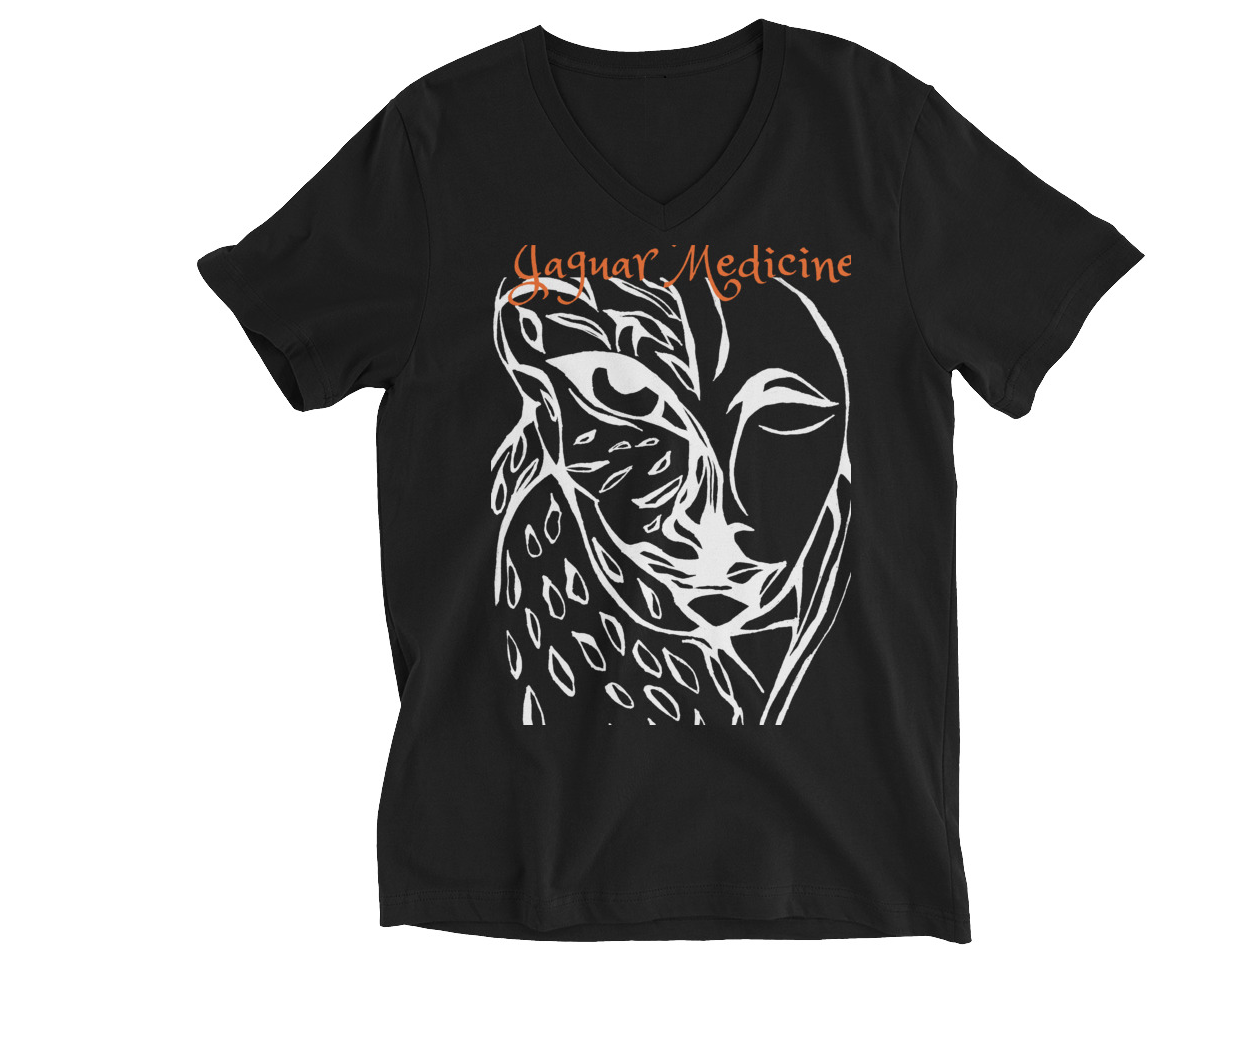 JAGUAR MEDICINE Black Graphic Tee